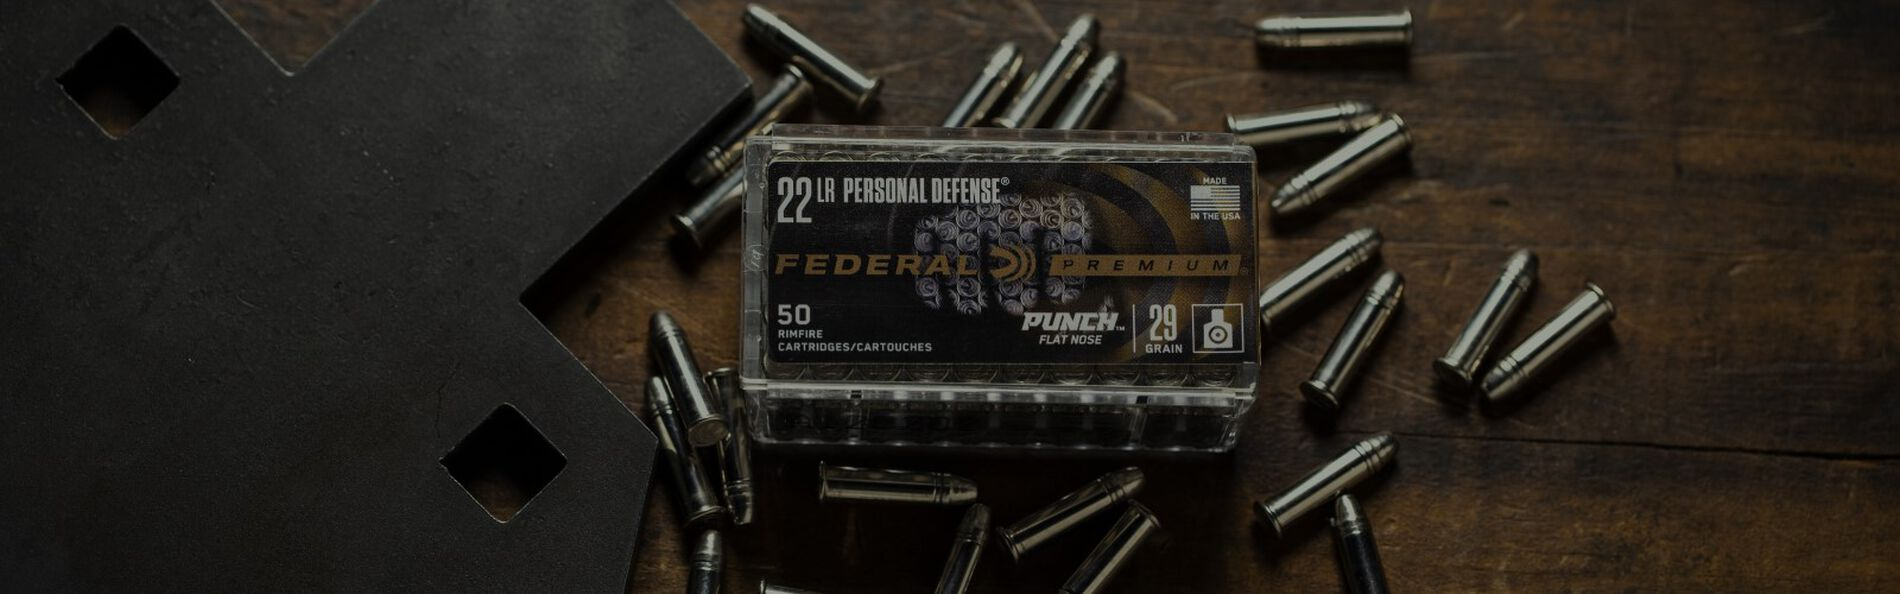 Punch 22 LR Packing on top of Punch 22 LR Cartridges